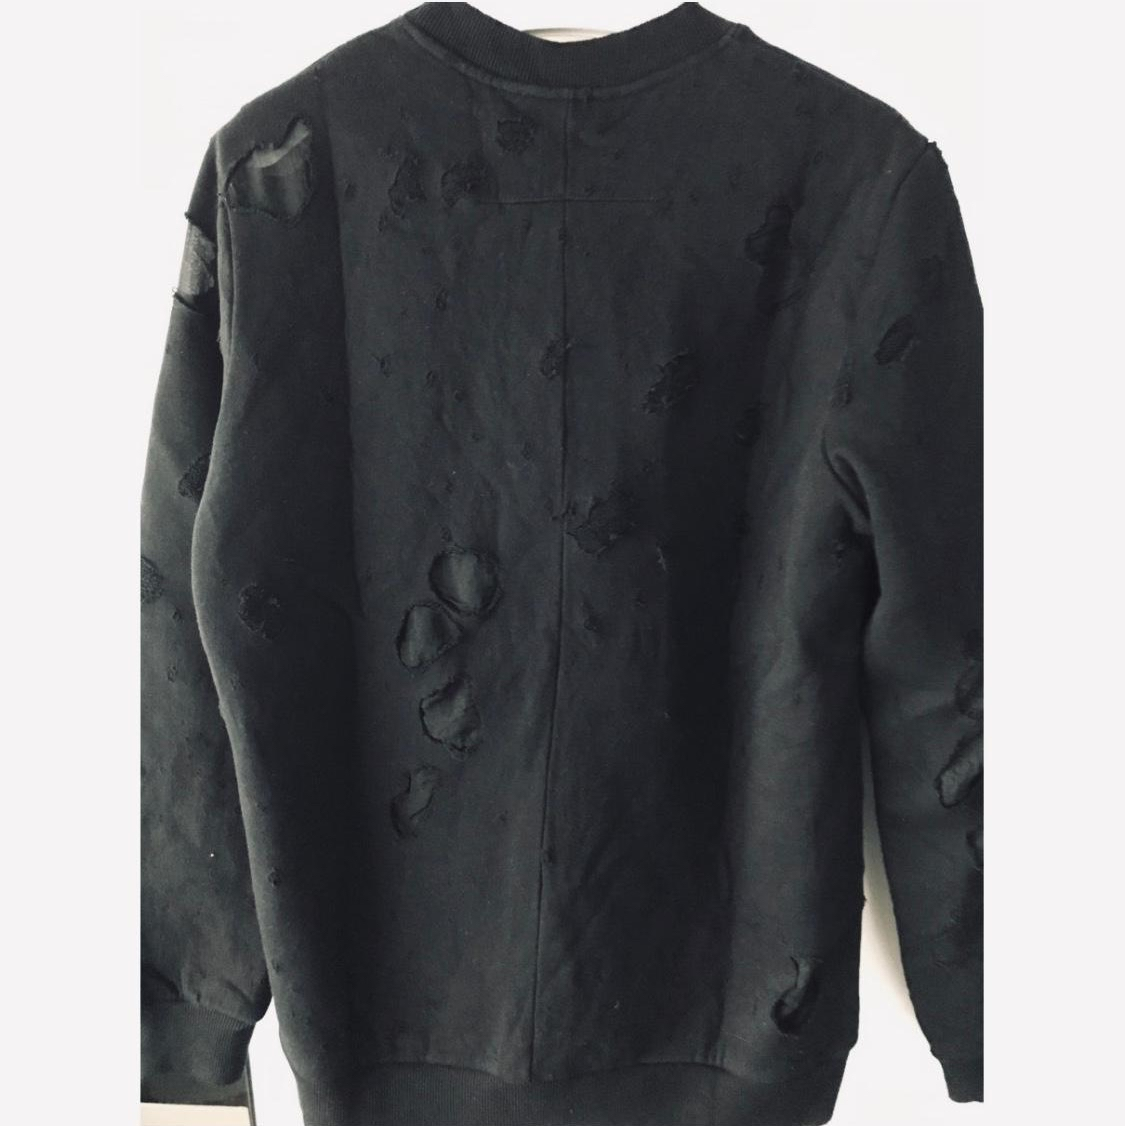 Givenchy distressed sweatshirt cuban fit Givenchy3